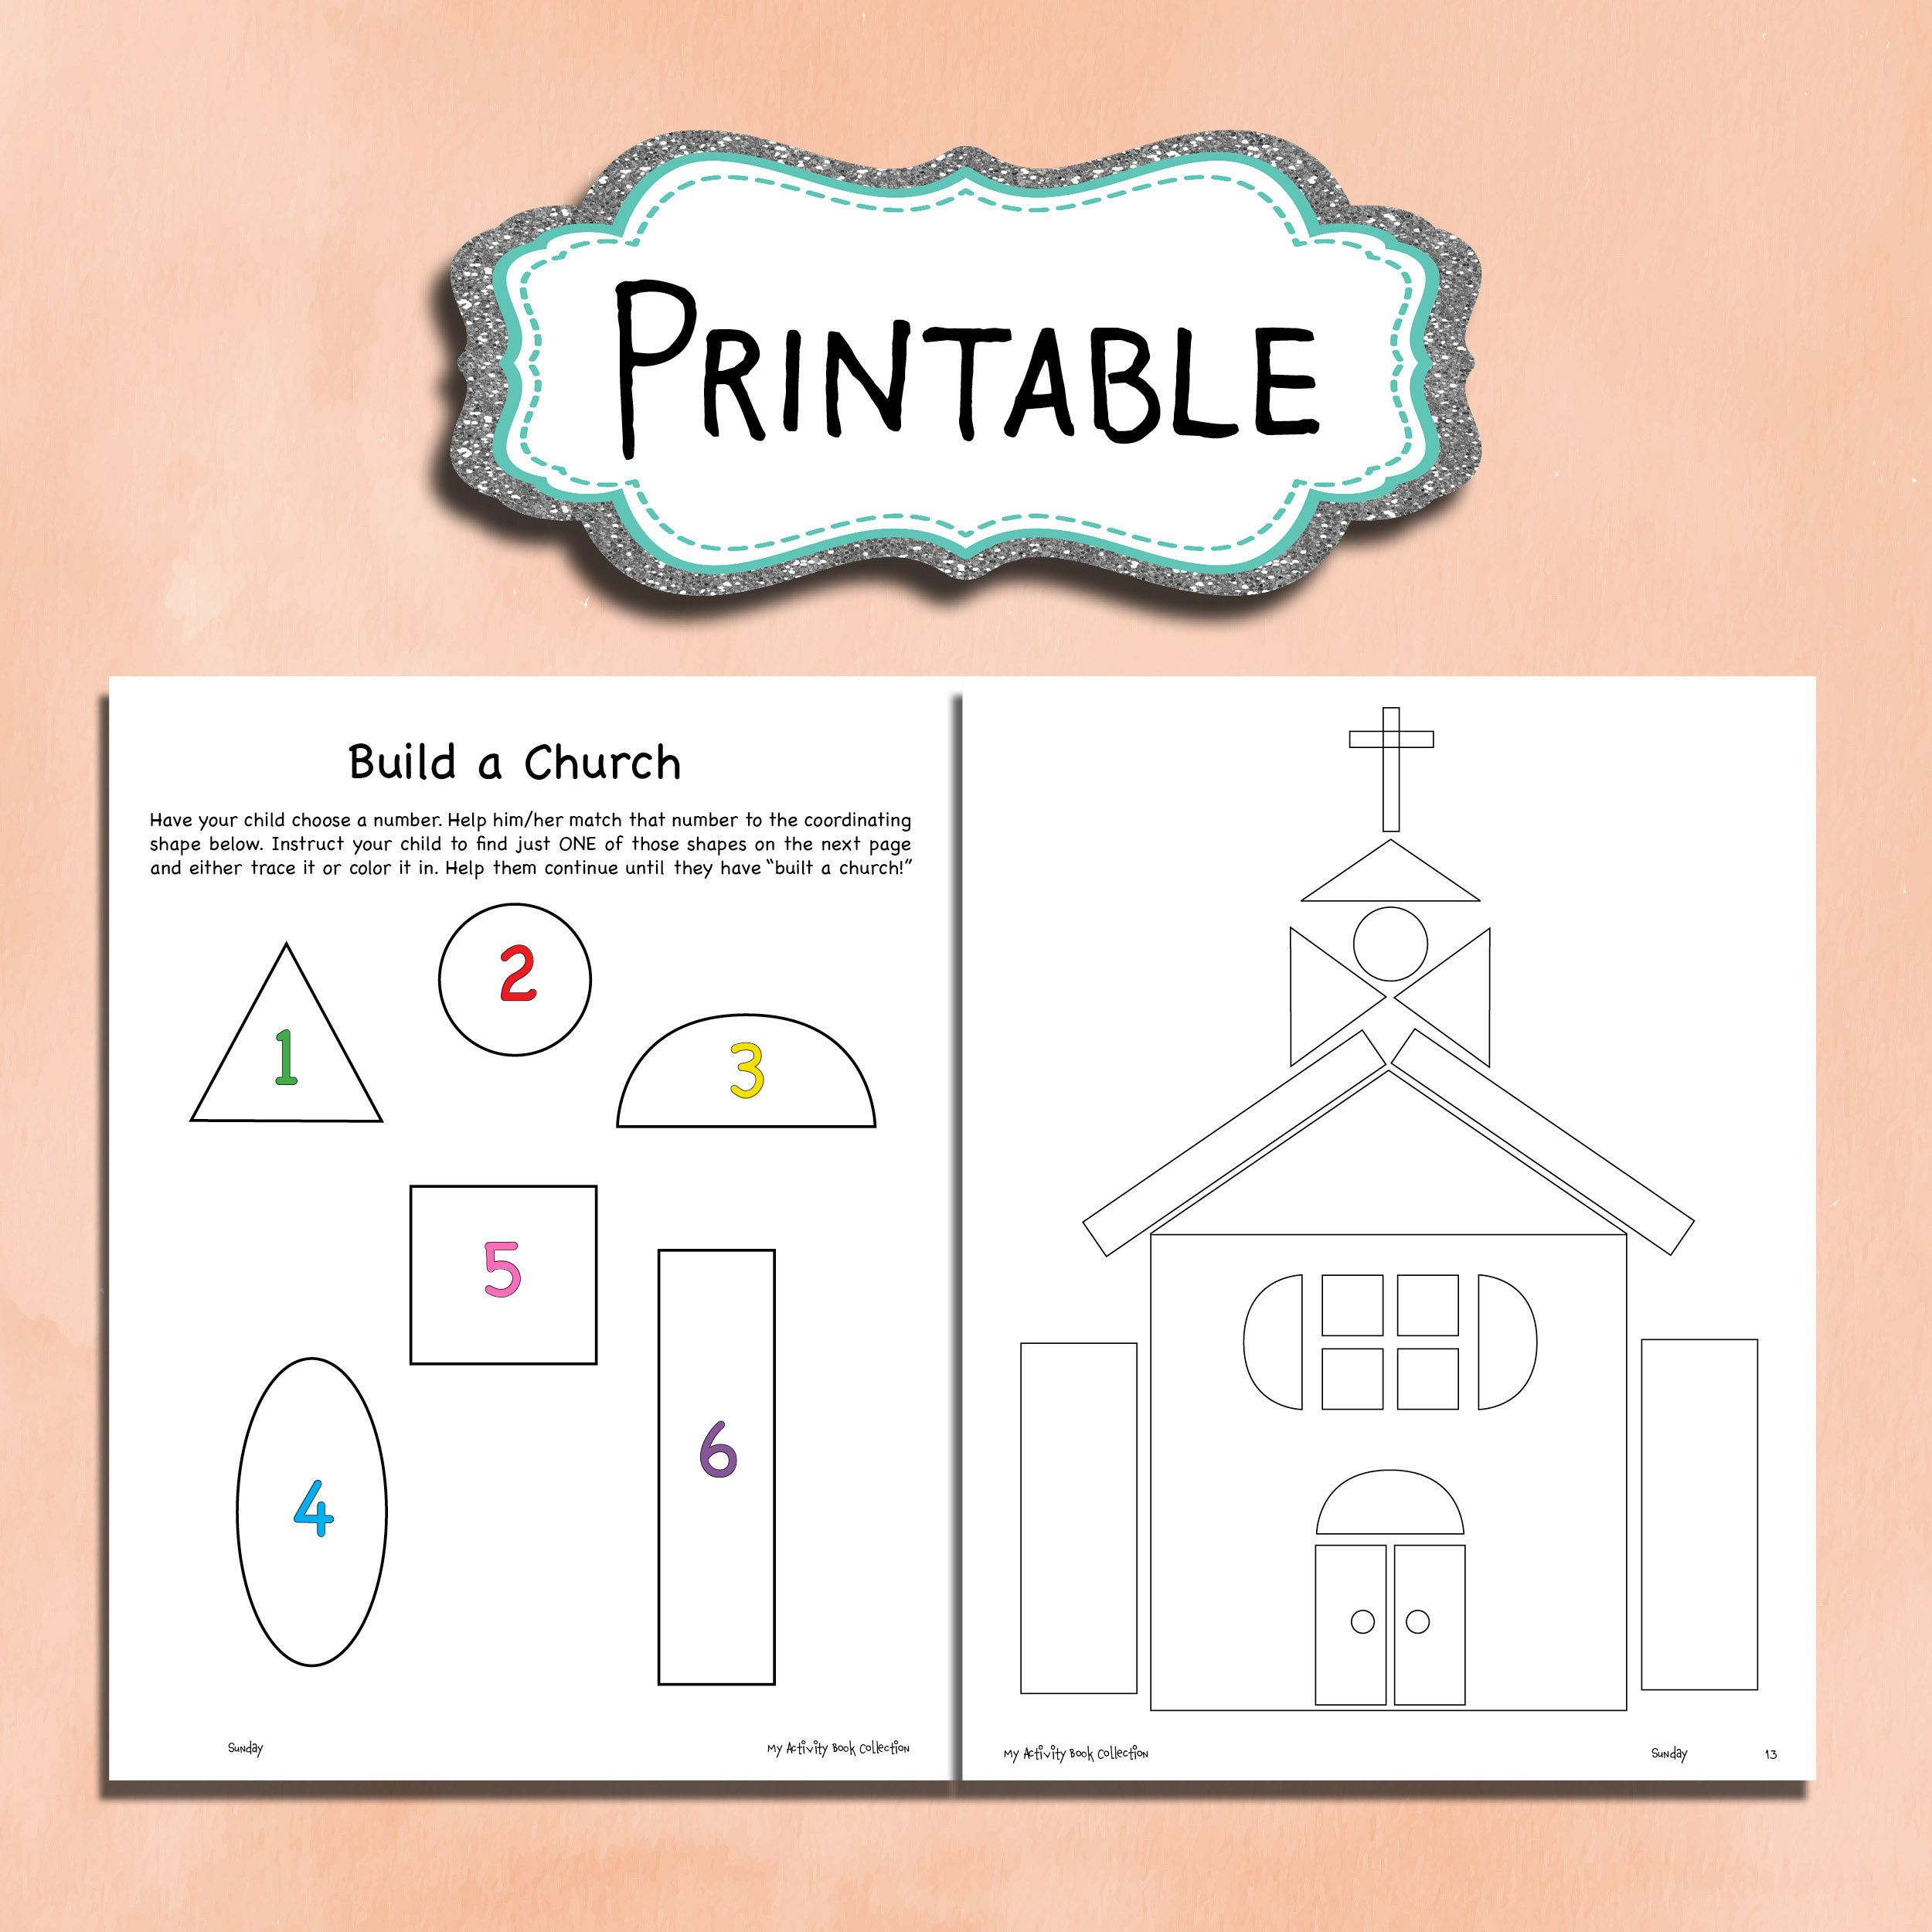 Build A Church Printable Worksheet For Kids